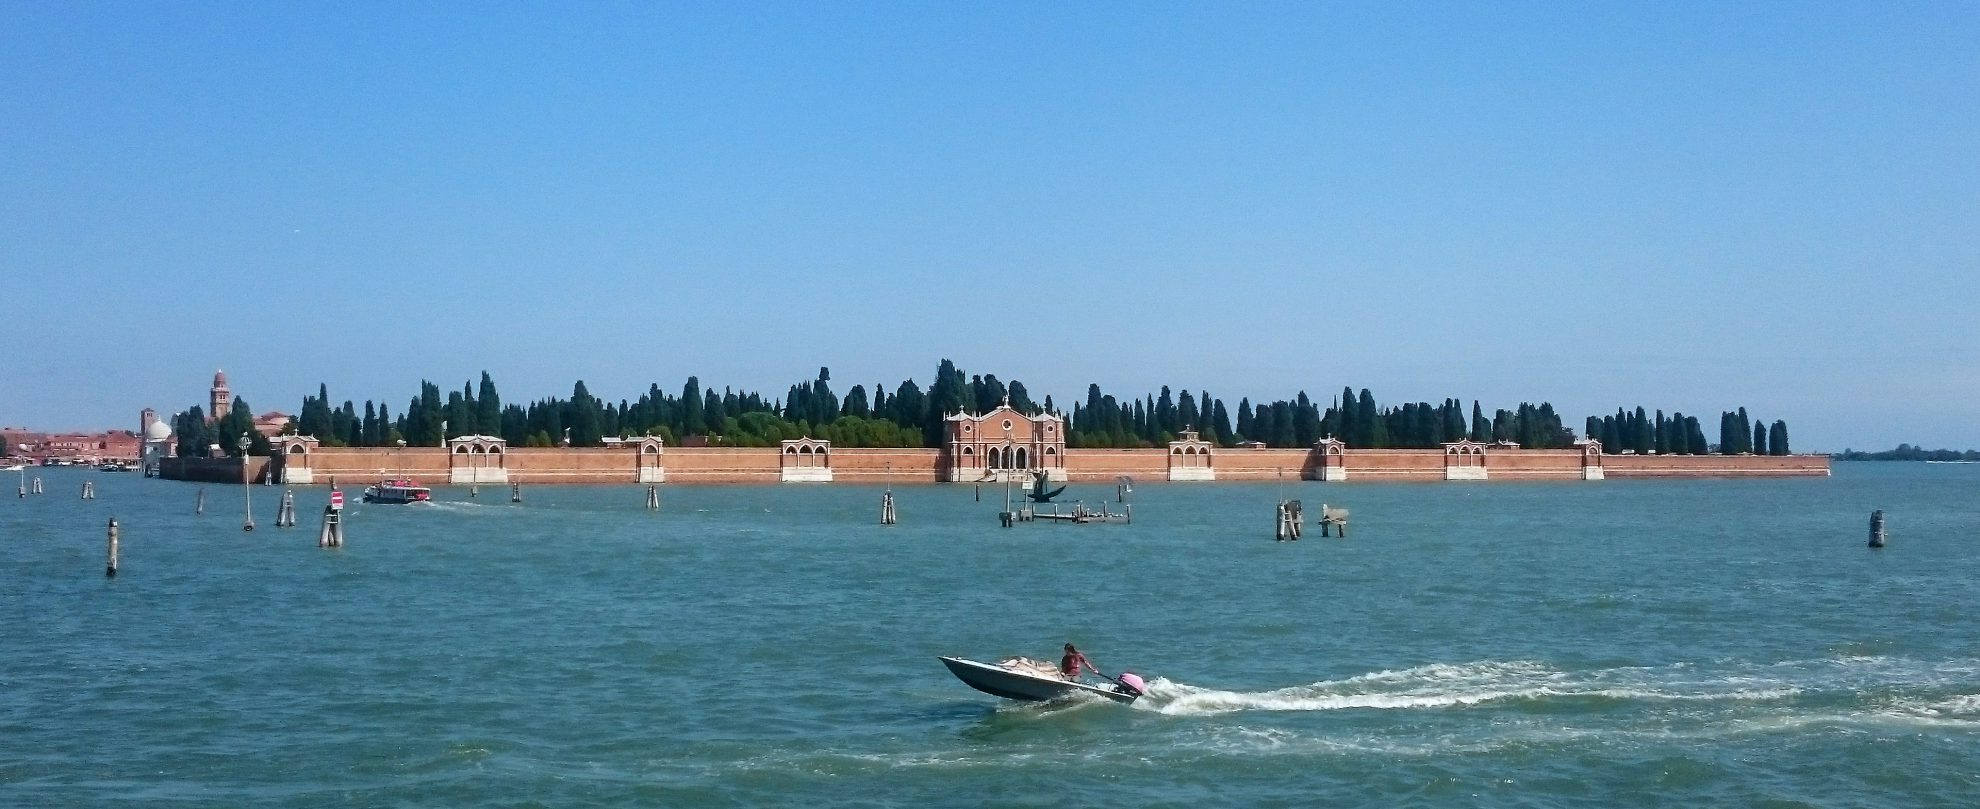 Venice Lagoon - Coastscapes Imaginaries